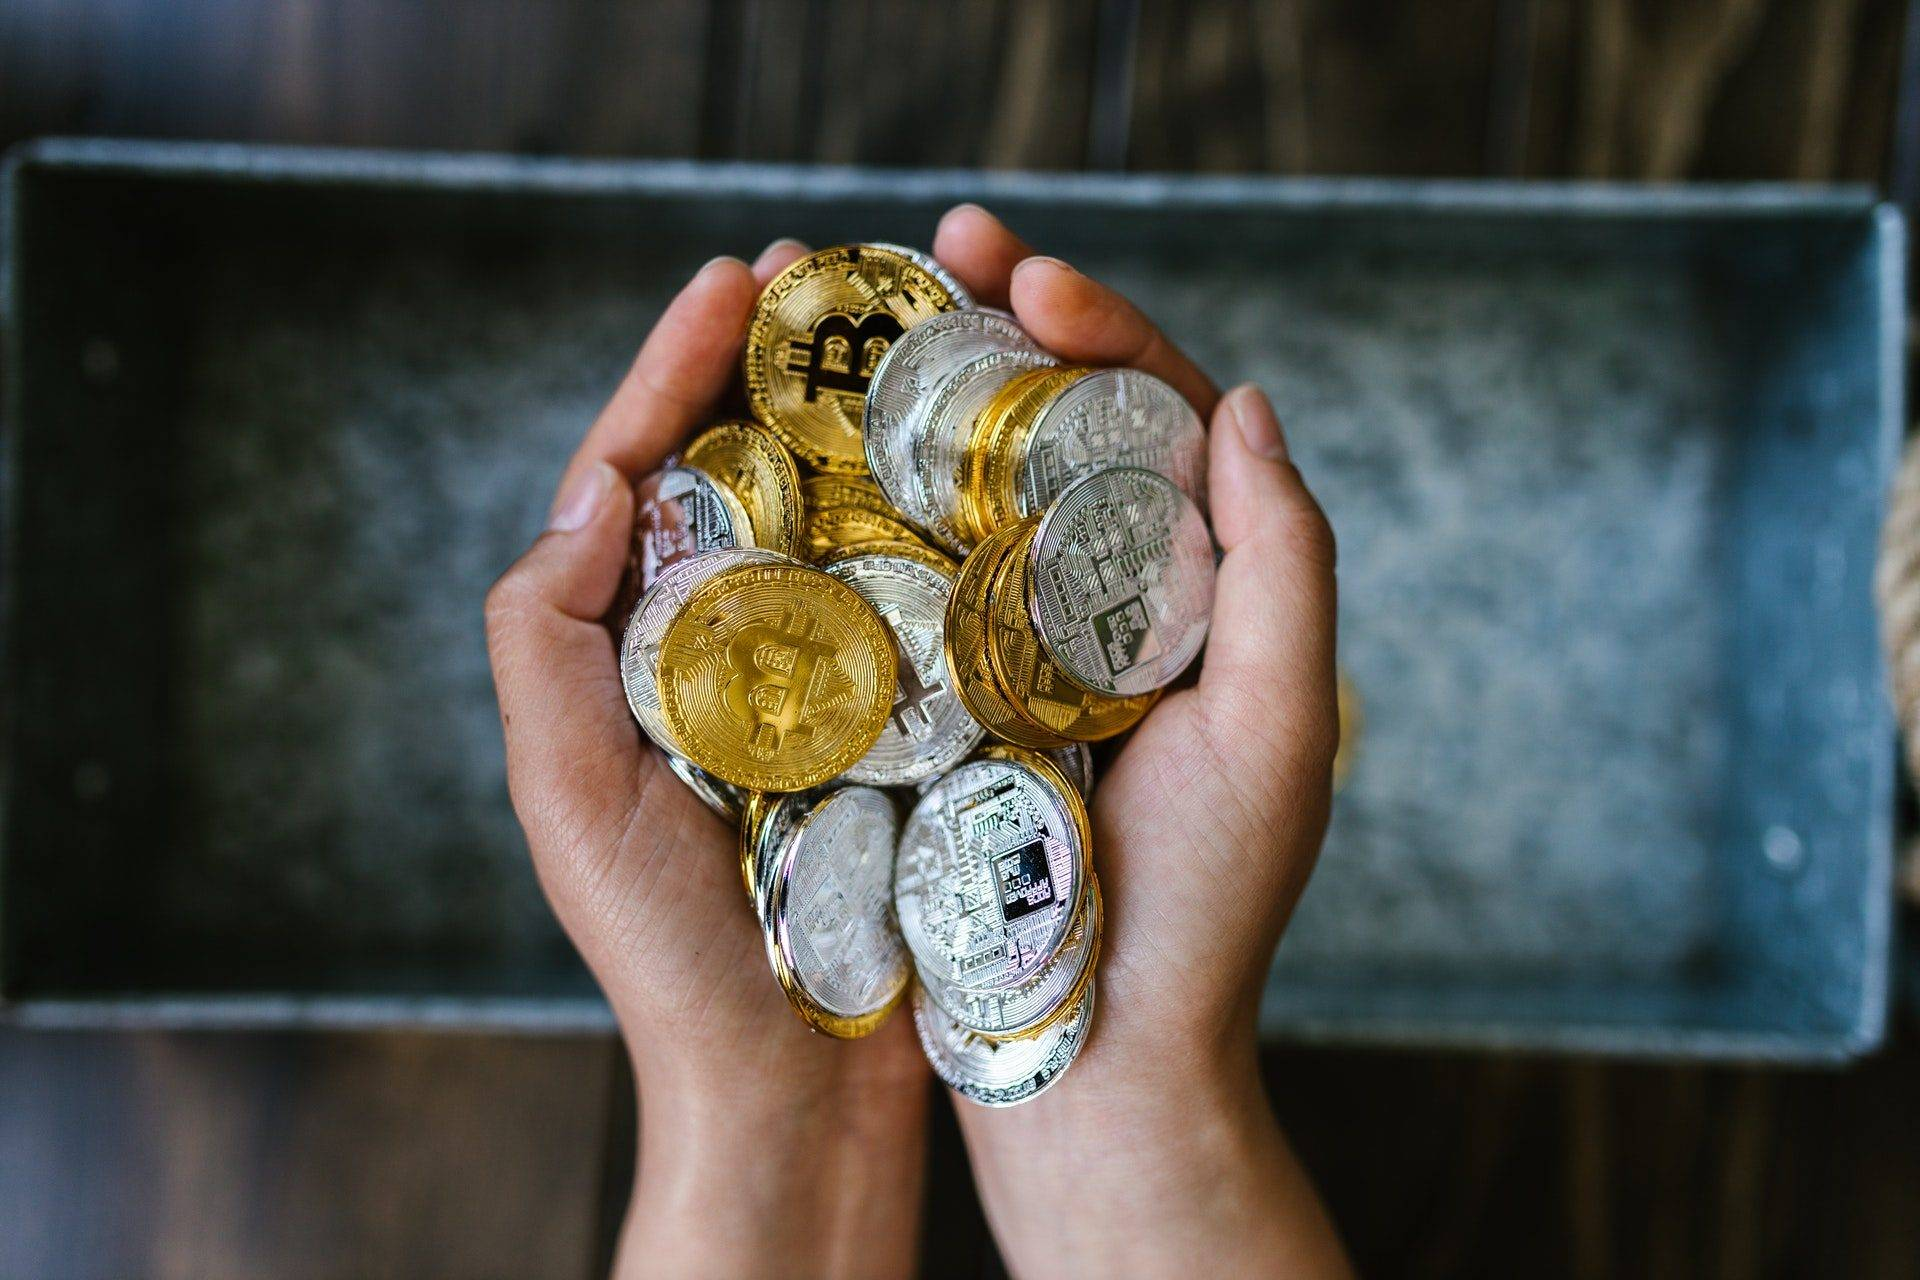 5 Best Cryptocurrencies To Buy For The Recovery - June 2021 Week 4 - InsideBitcoins.com